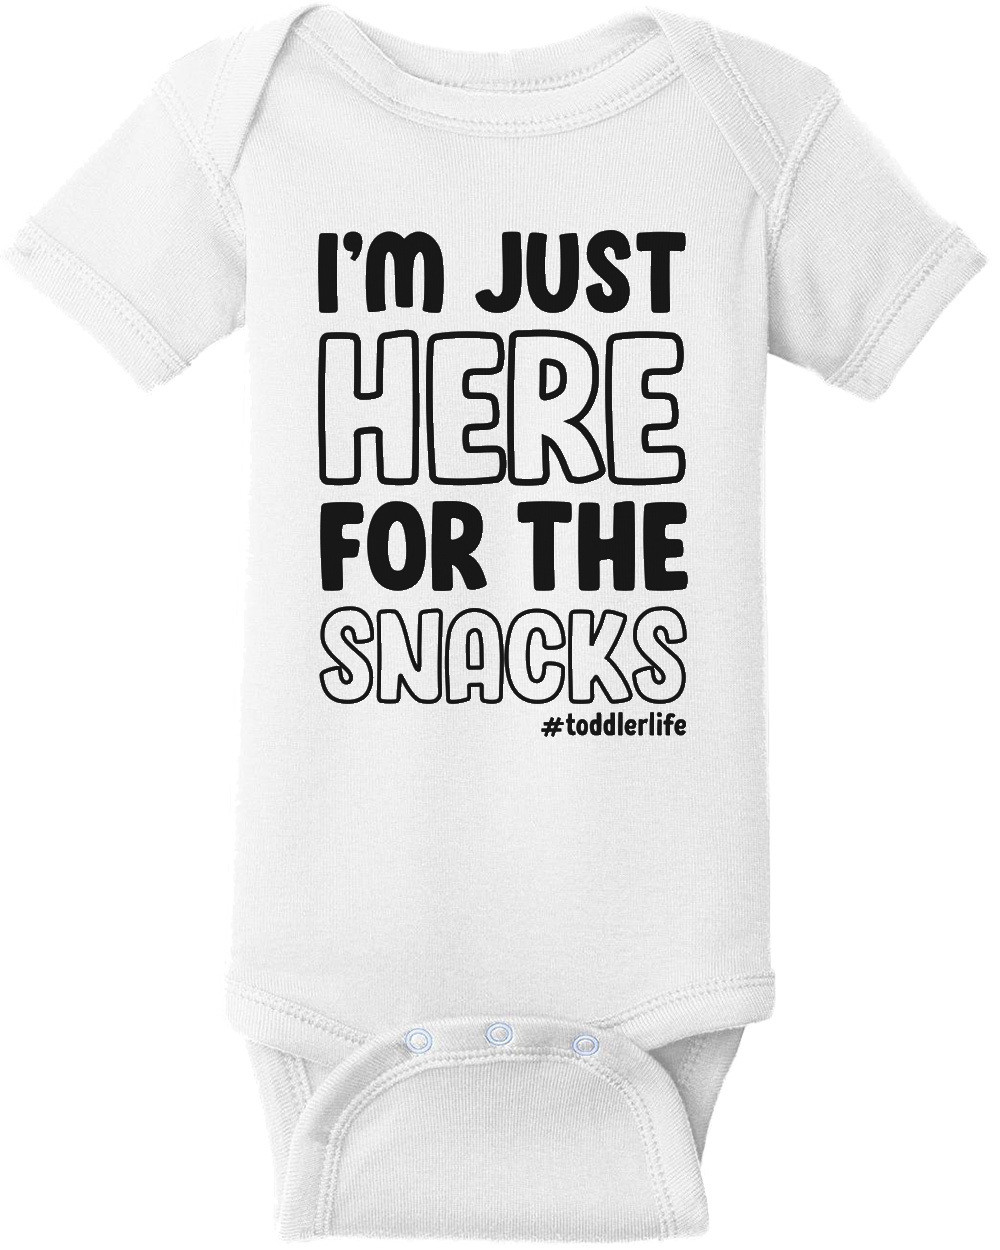 I'm just here for the snacks #toddlerlife - funny kids t-shirt